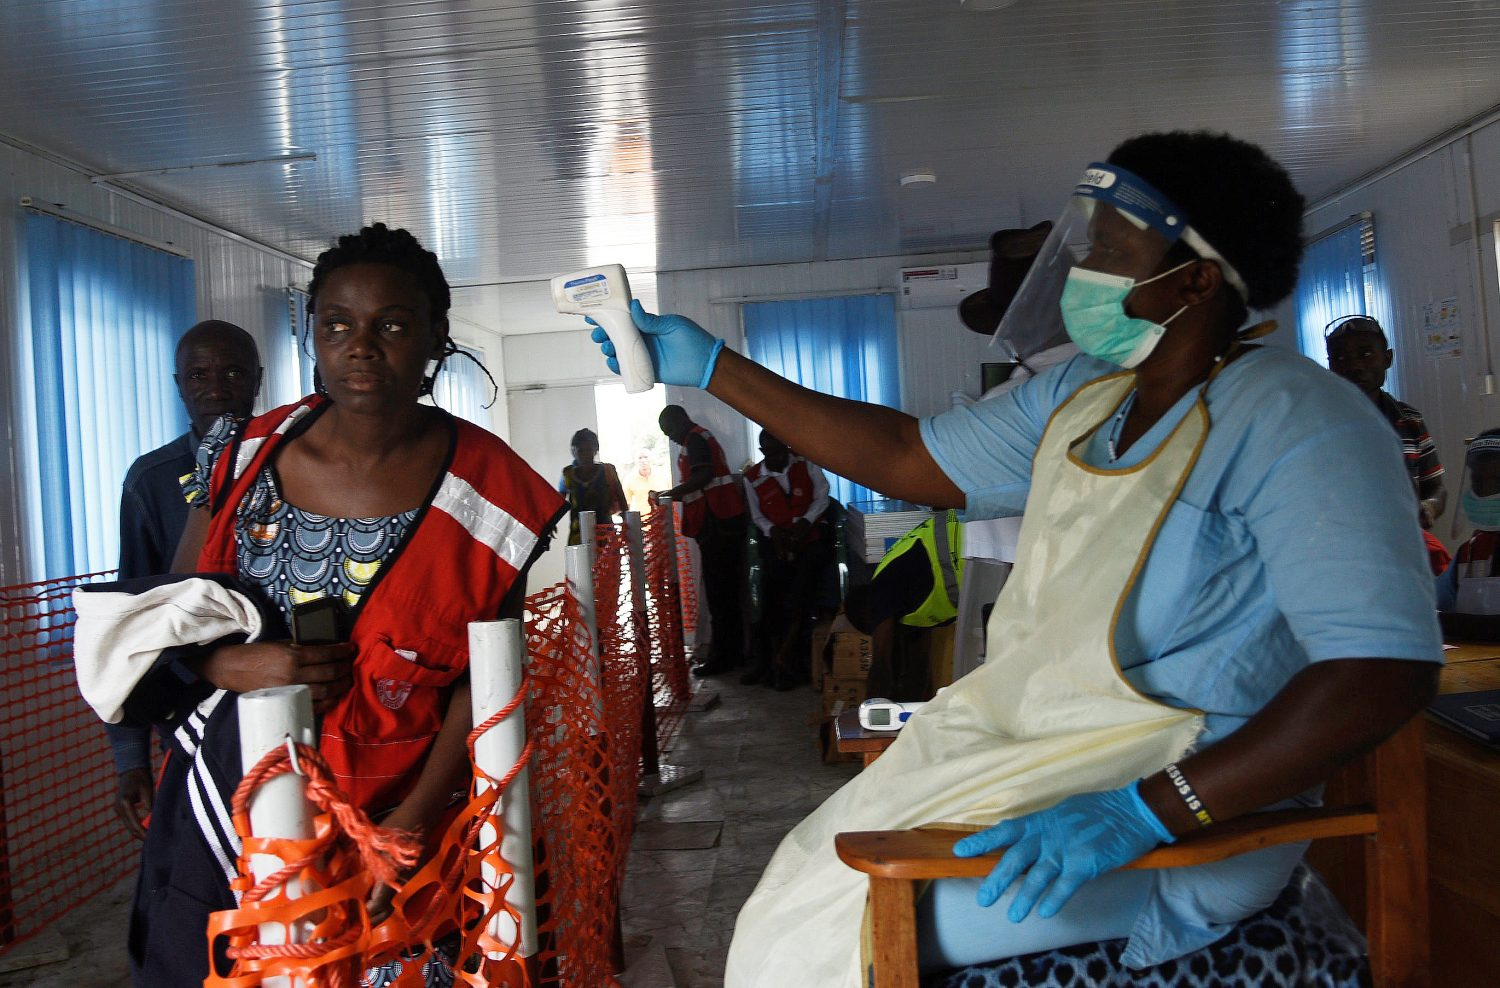 A health worker checks the temperature of a woman as she crosses the Mpondwe border point separating Uganda and the Democratic Republic of Congo as part of the ebola screening at the computerised Mpondwe Health Screening Facility in Mpondwe, Uganda June 13, 2019. REUTERS/Newton Nabwaya